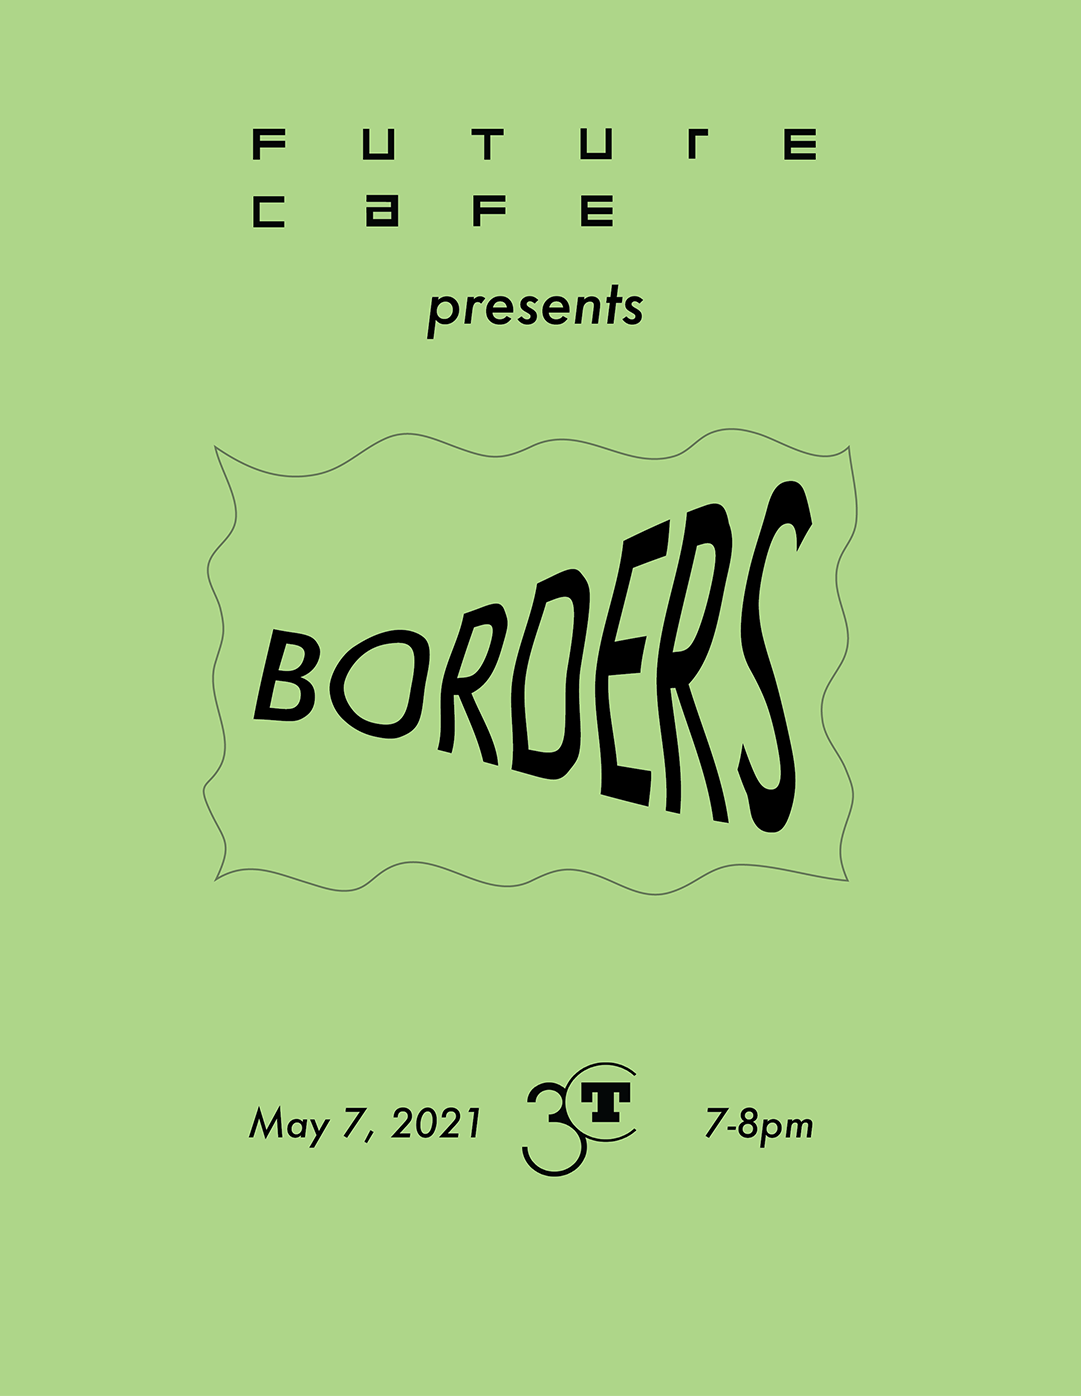 flyer for Future Cafe Borders event, black text on green